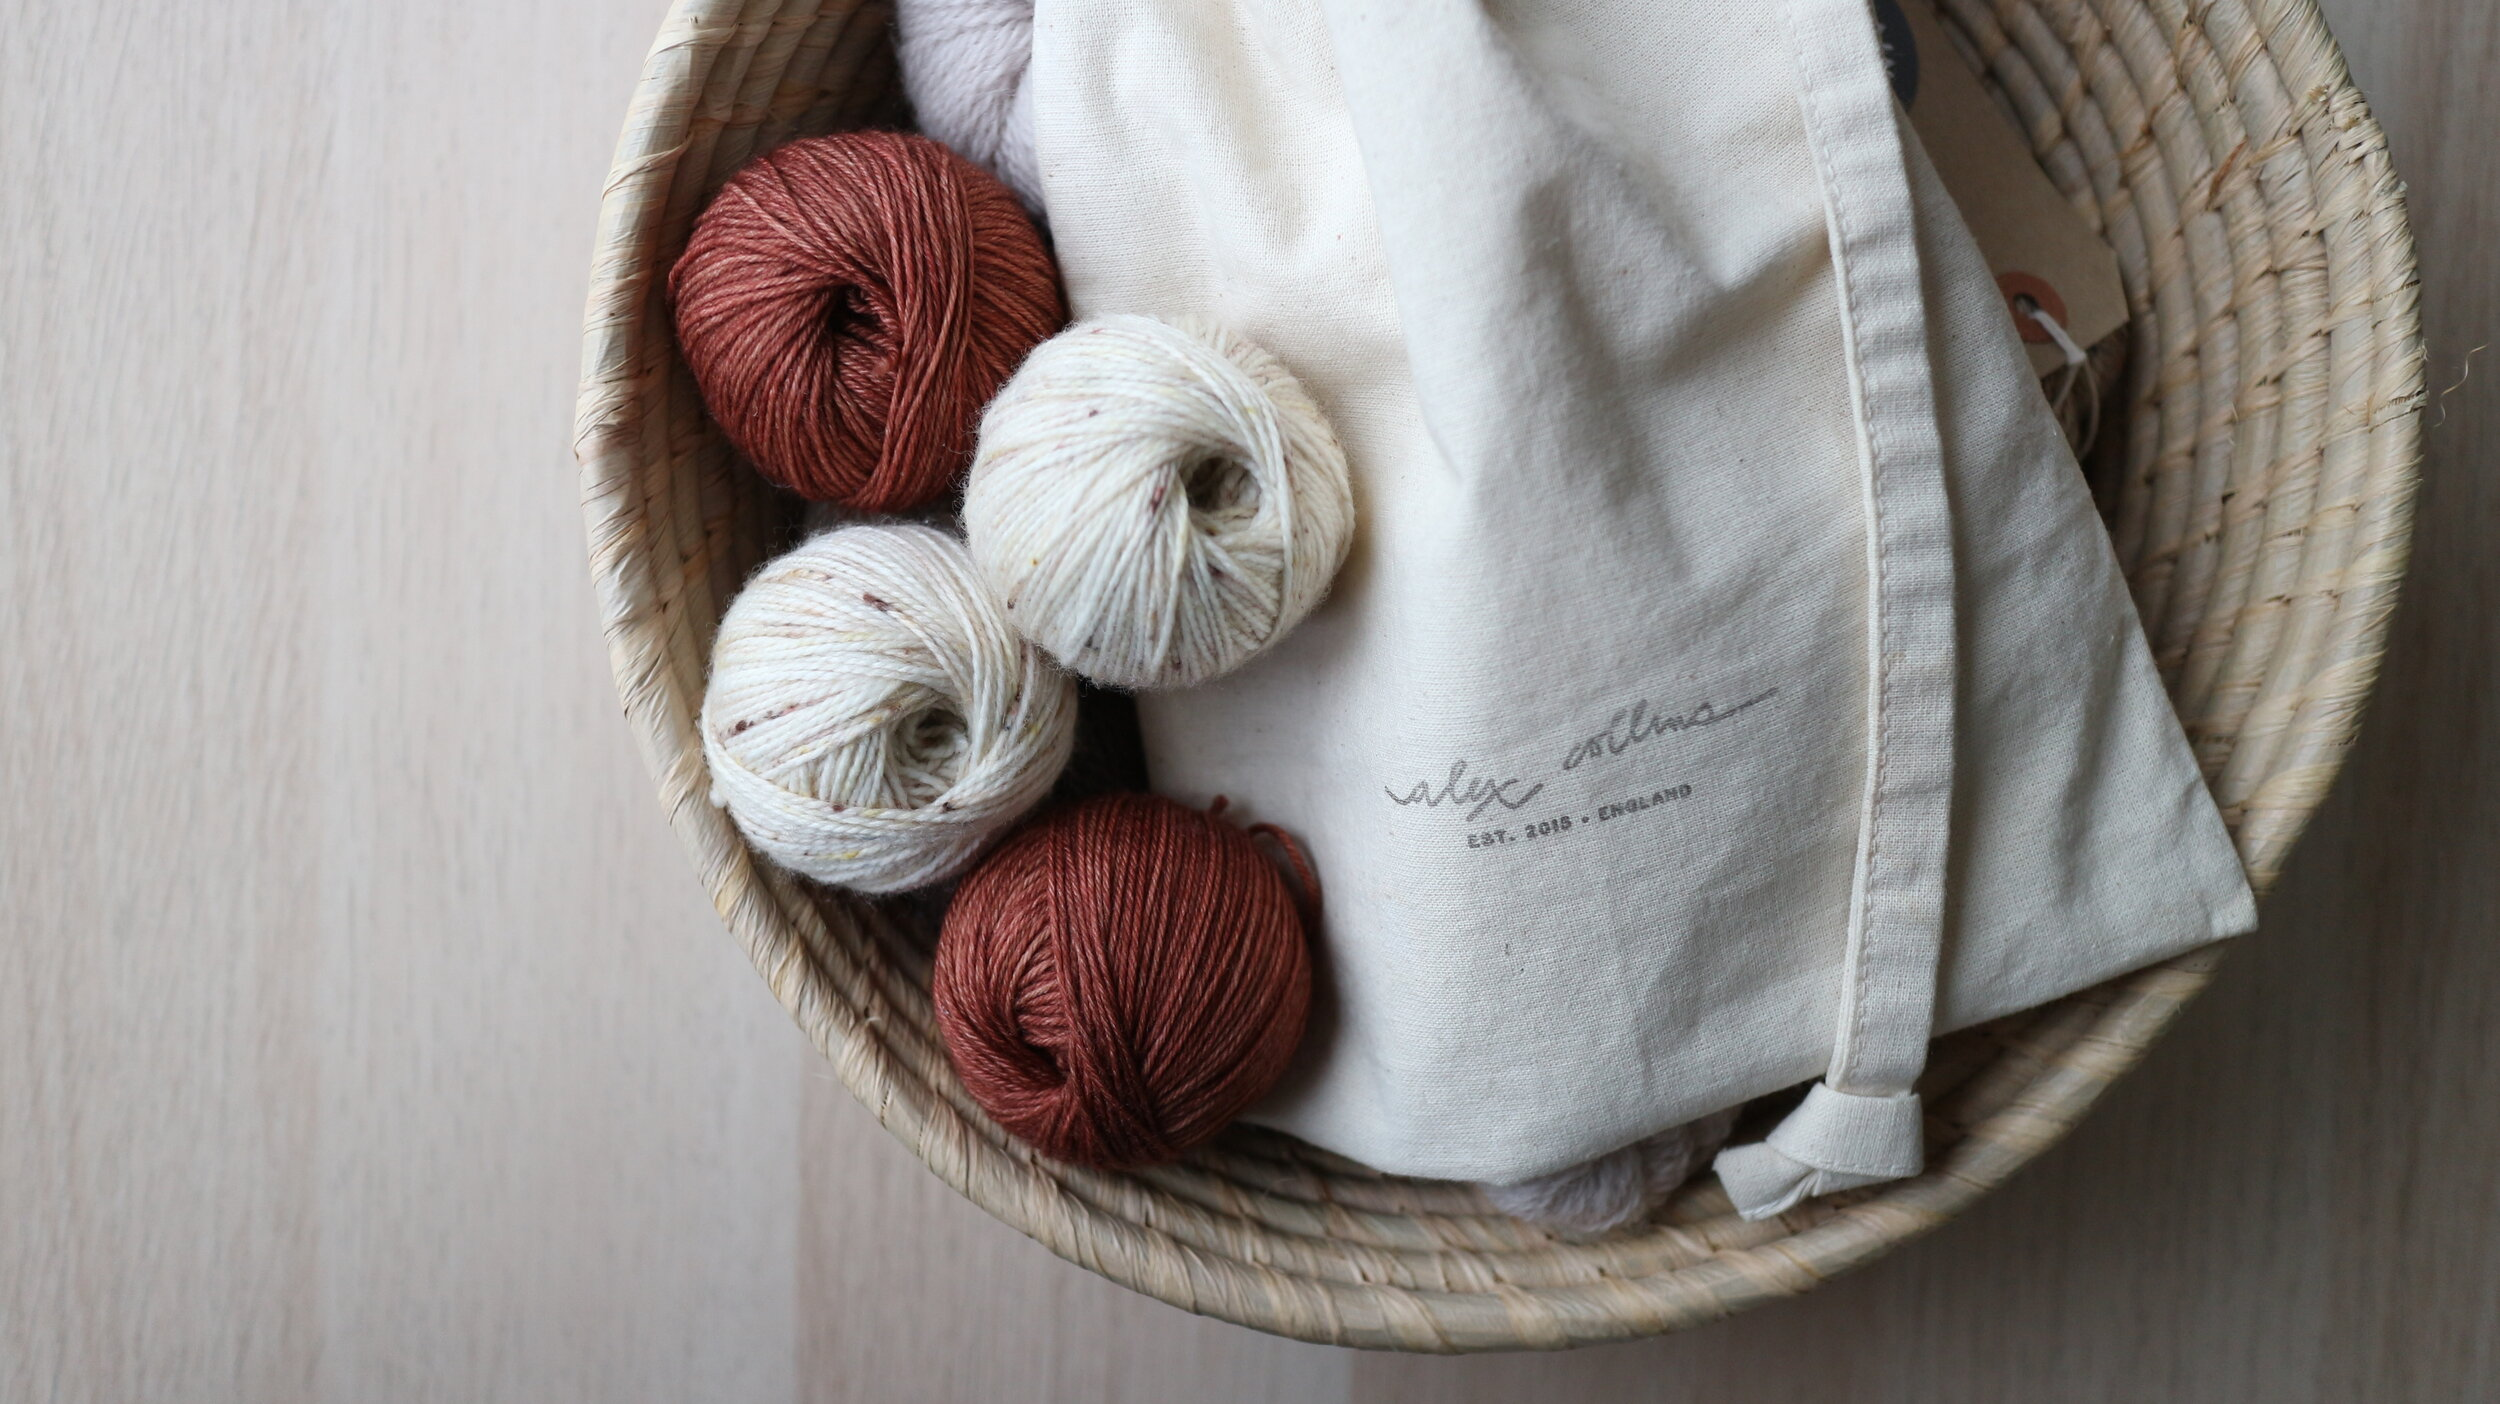 How to wind a ball of yarn by hand